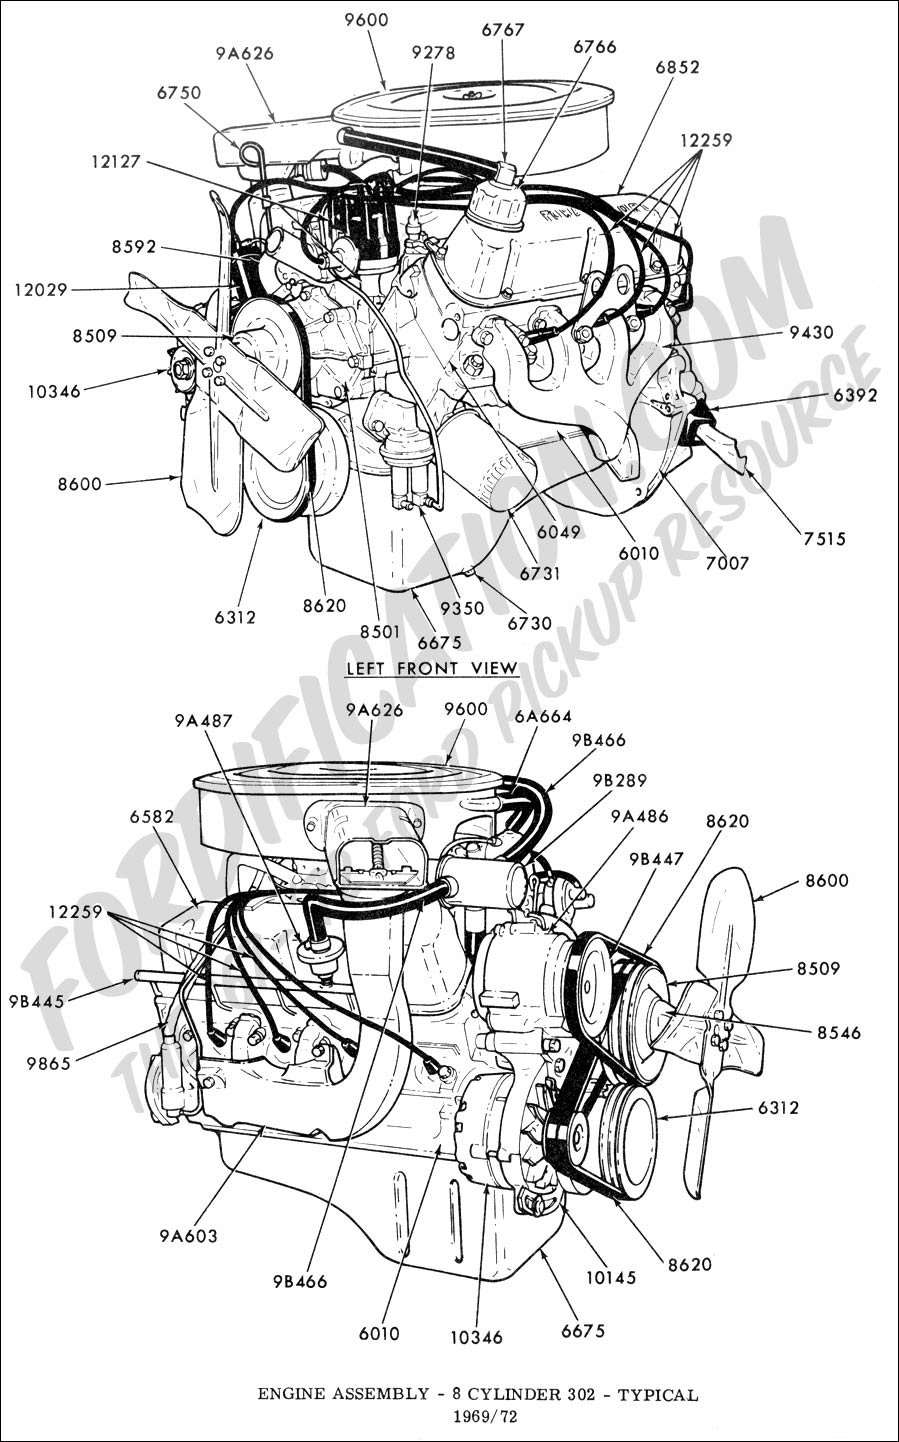 350 engine parts diagram